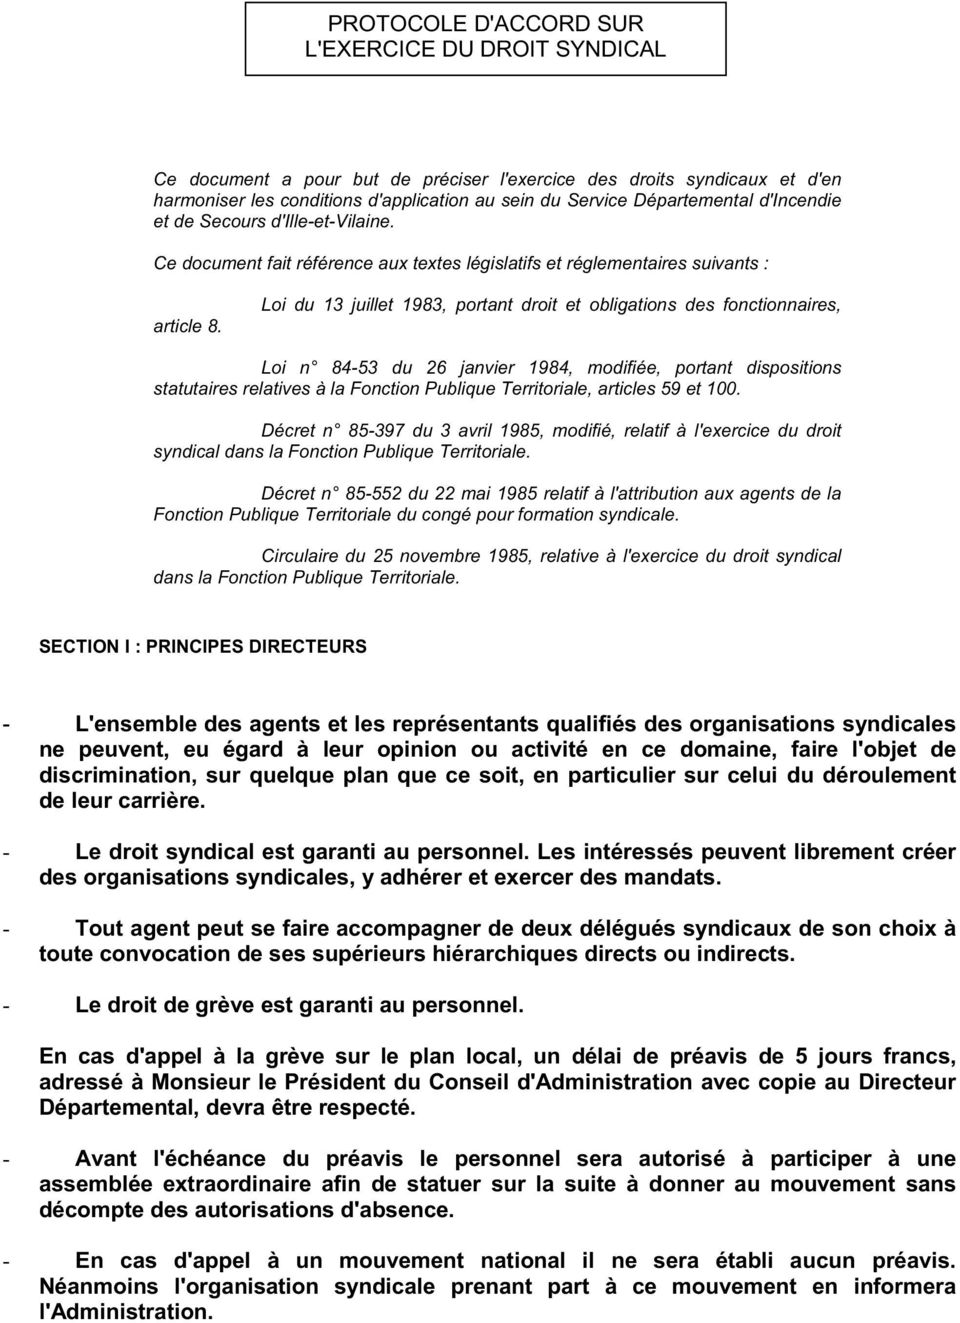 Loi du 13 juillet 1983, portant droit et obligations des fonctionnaires, Loi n 84-53 du 26 janvier 1984, modifiée, portant dispositions statutaires relatives à la Fonction Publique Territoriale,